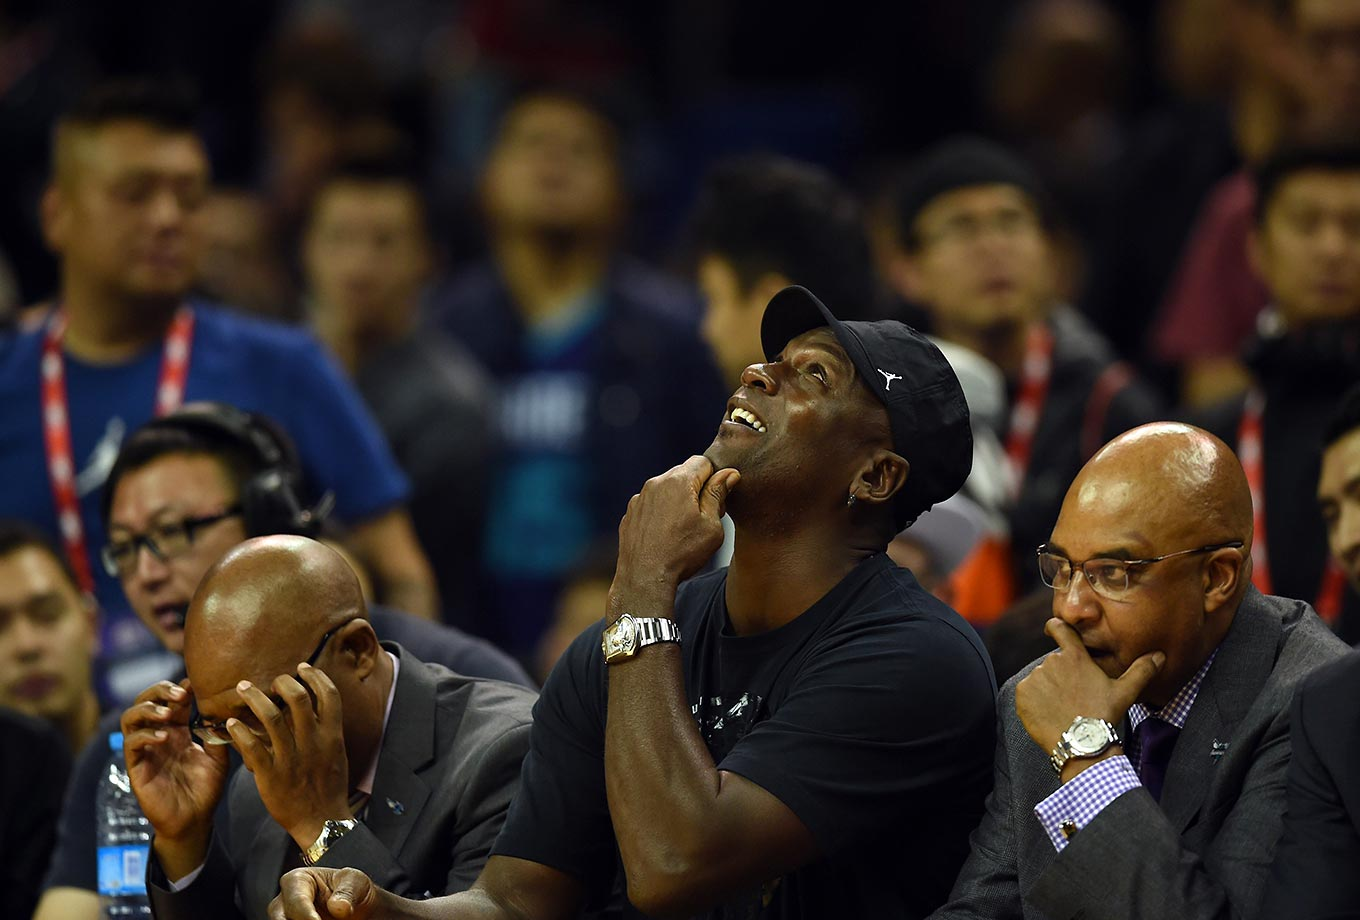 Michael Jordan at the 2015 NBA Global Games China preseason basketball match in Shanghai.